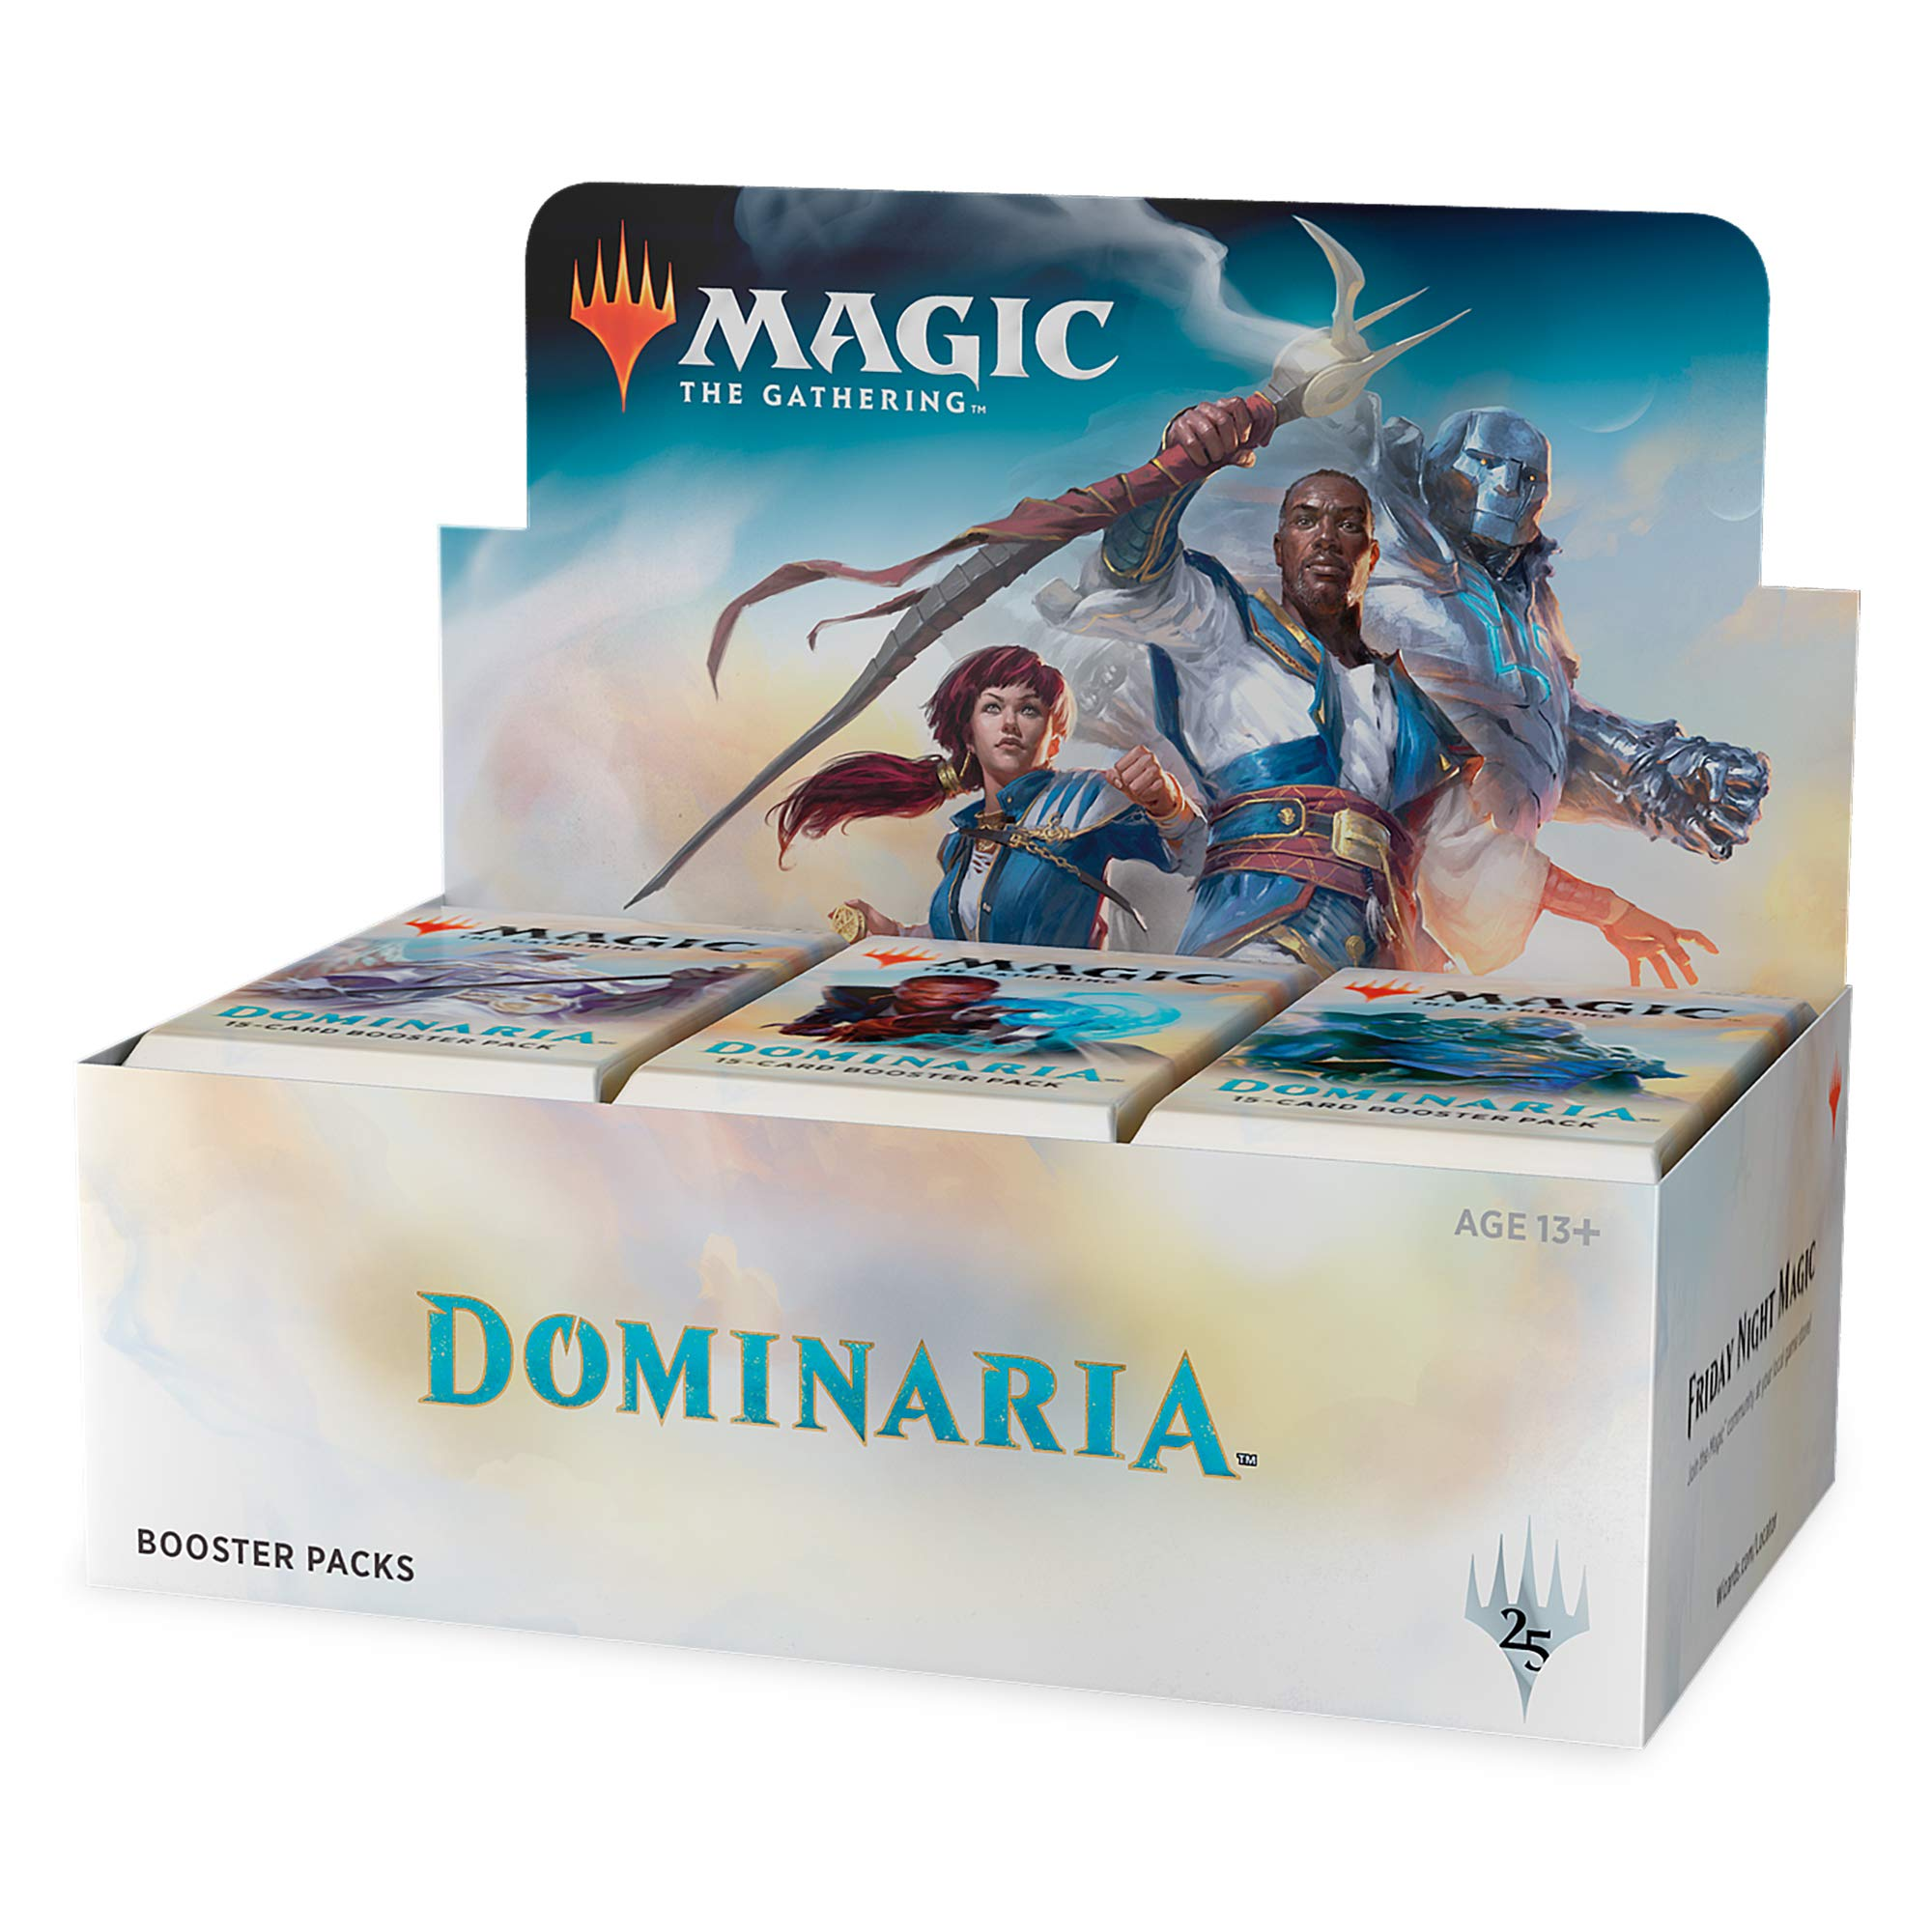 Magic: The Gathering: Dominaria Booster Display Box by Magic: The Gathering (Image #1)